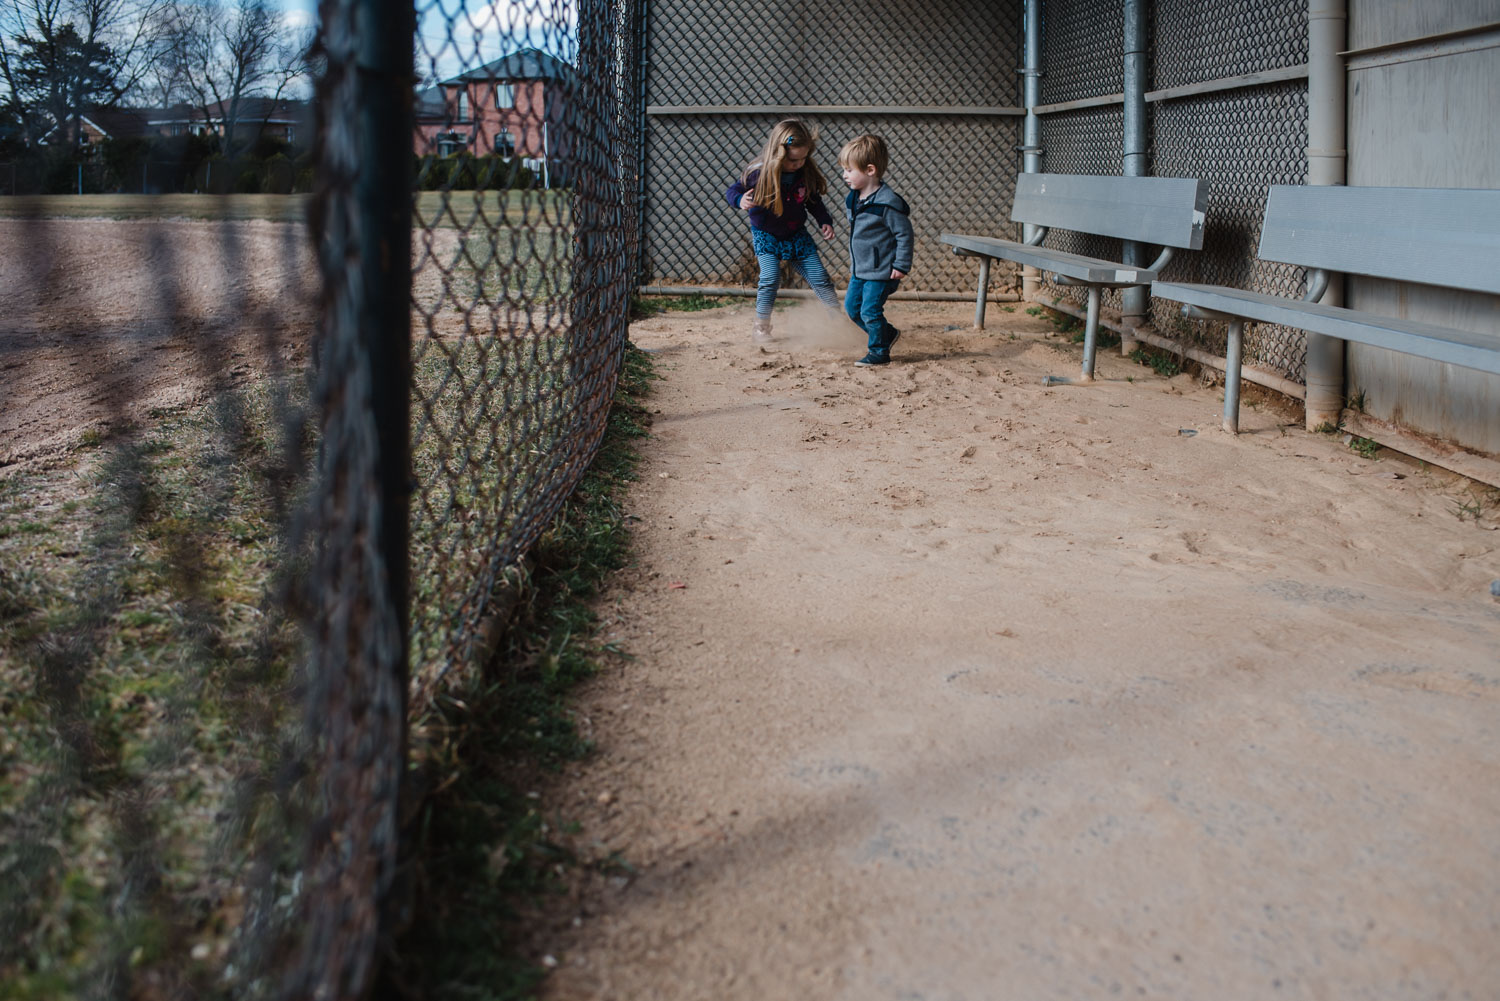 Two children scuffing dirt in a baseball dugout.